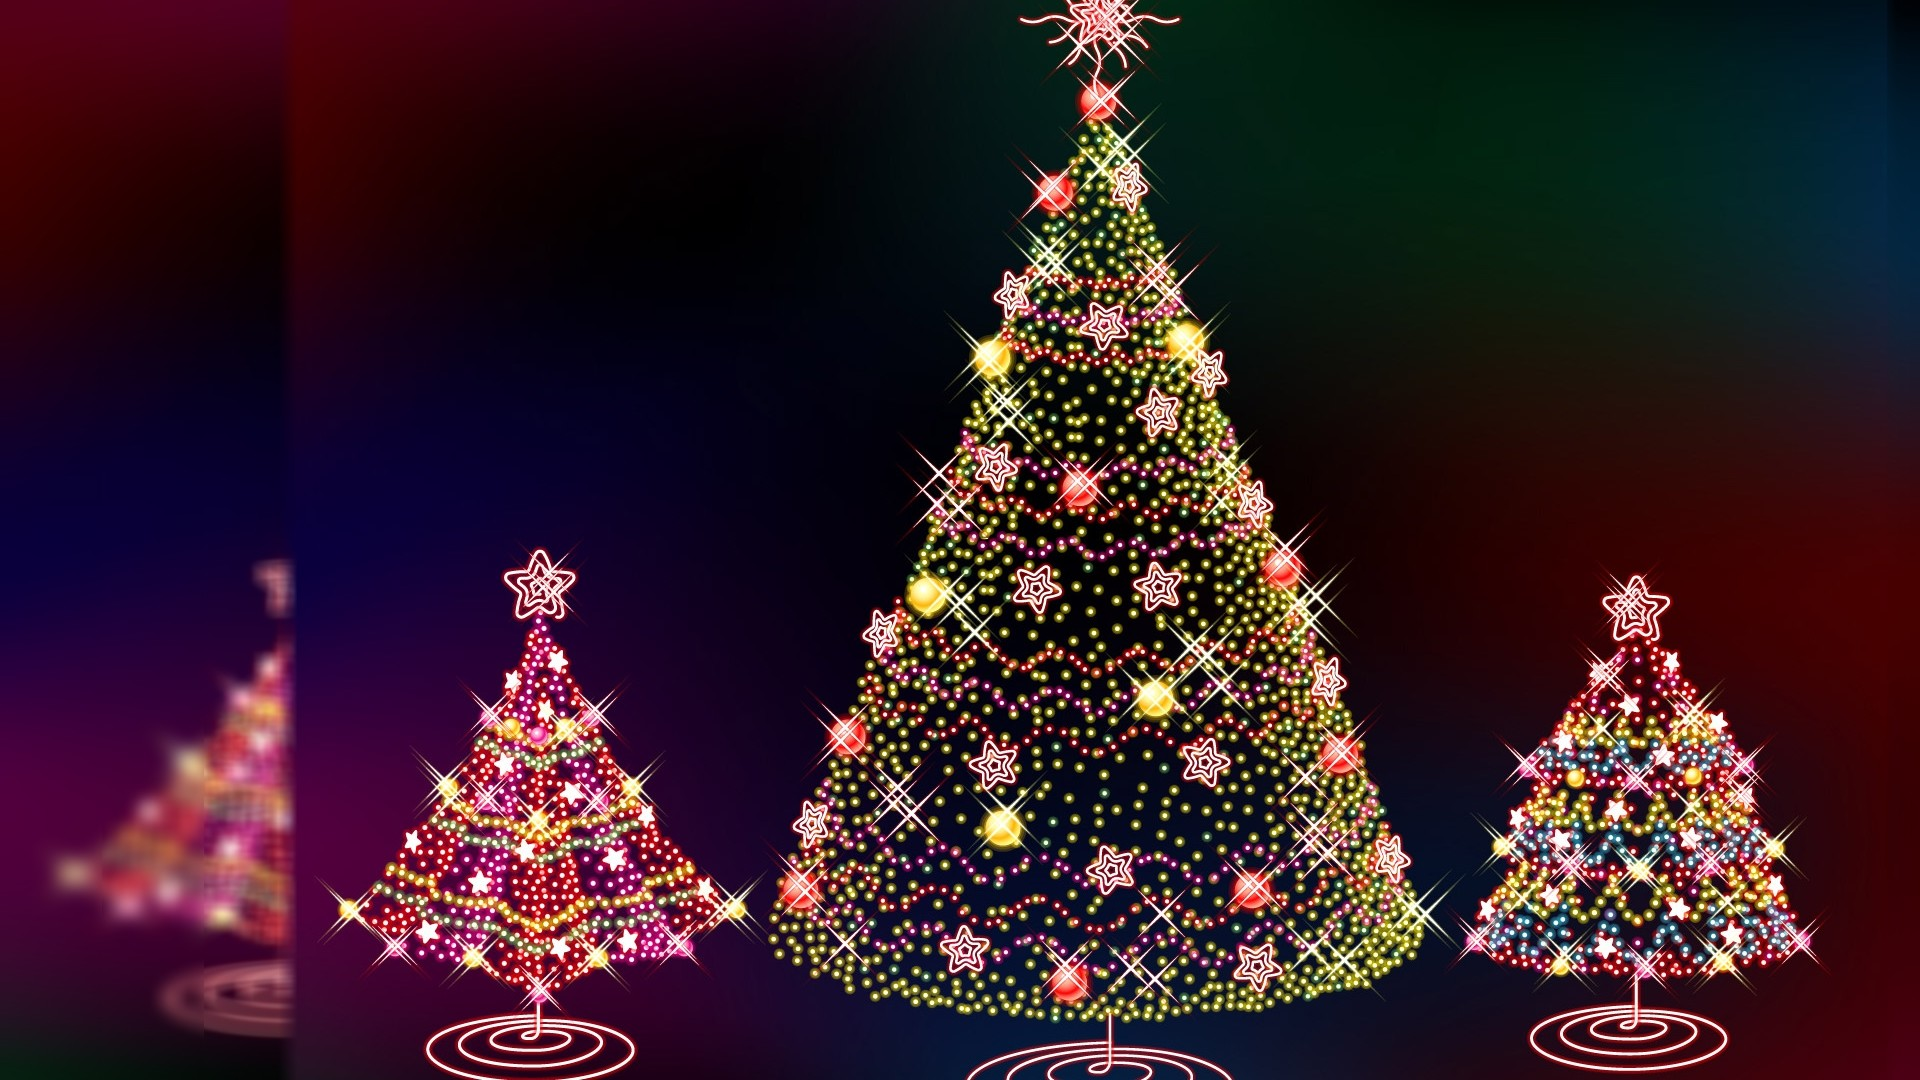 1920x1080 super hd christmas wallpapers free christmas wallpapers for desktop wallpapers